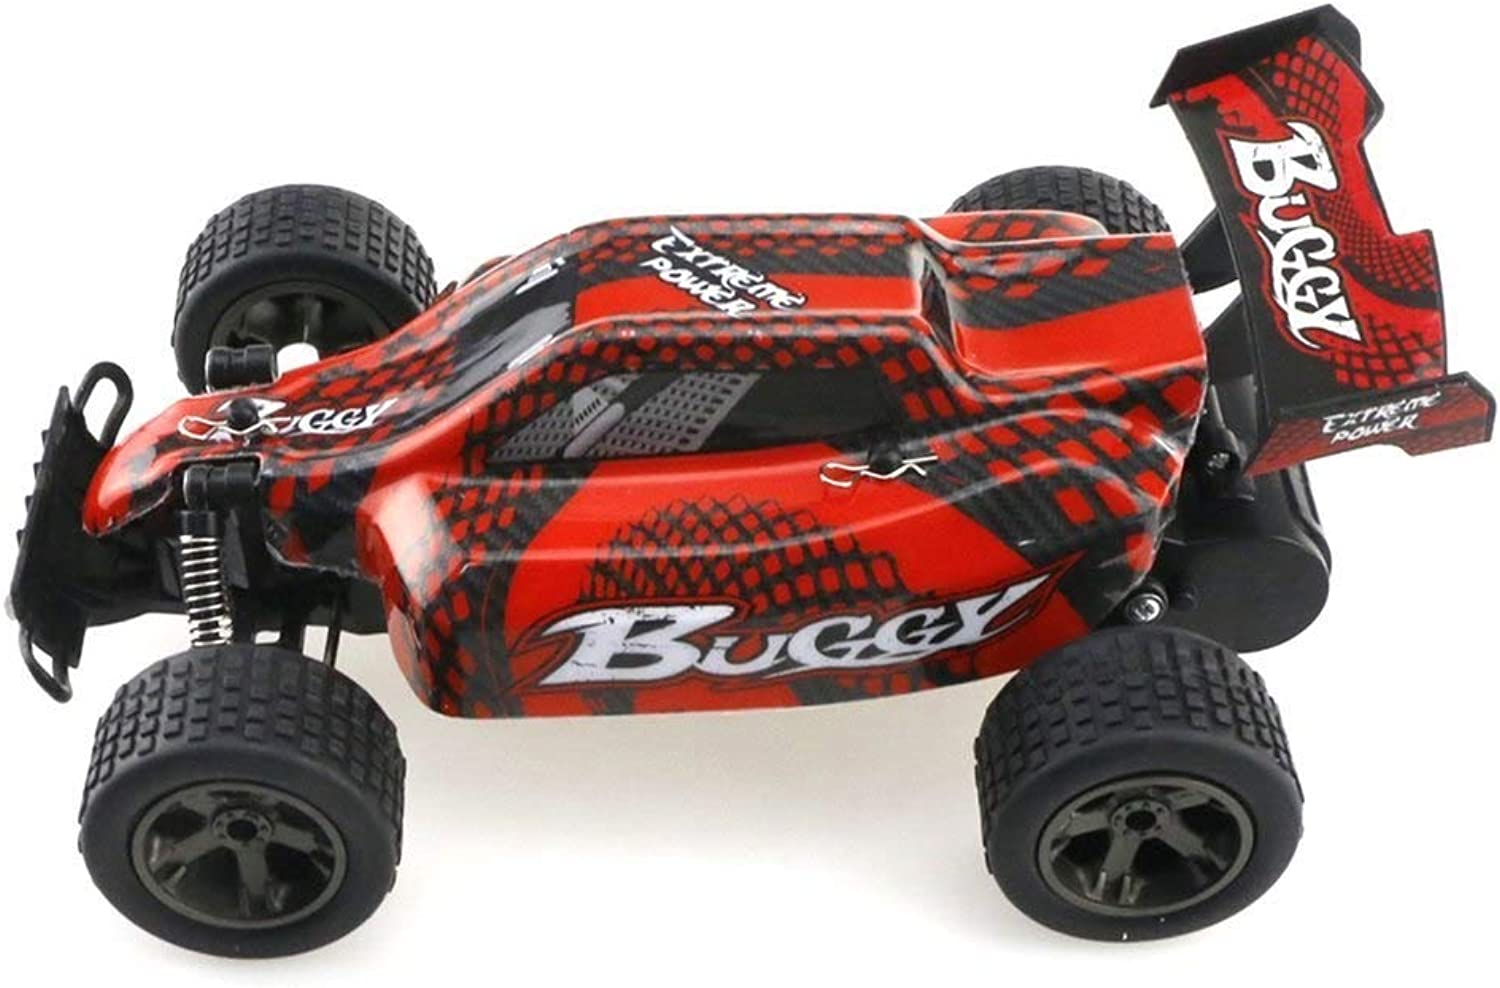 Generic New Vehicle 2810b 1 20 2.4ghz Two Wheel Drive Full Scale Racing Car Drift Vehiclehigh Speed Rc Climbing Car Model Toys Hobby Red